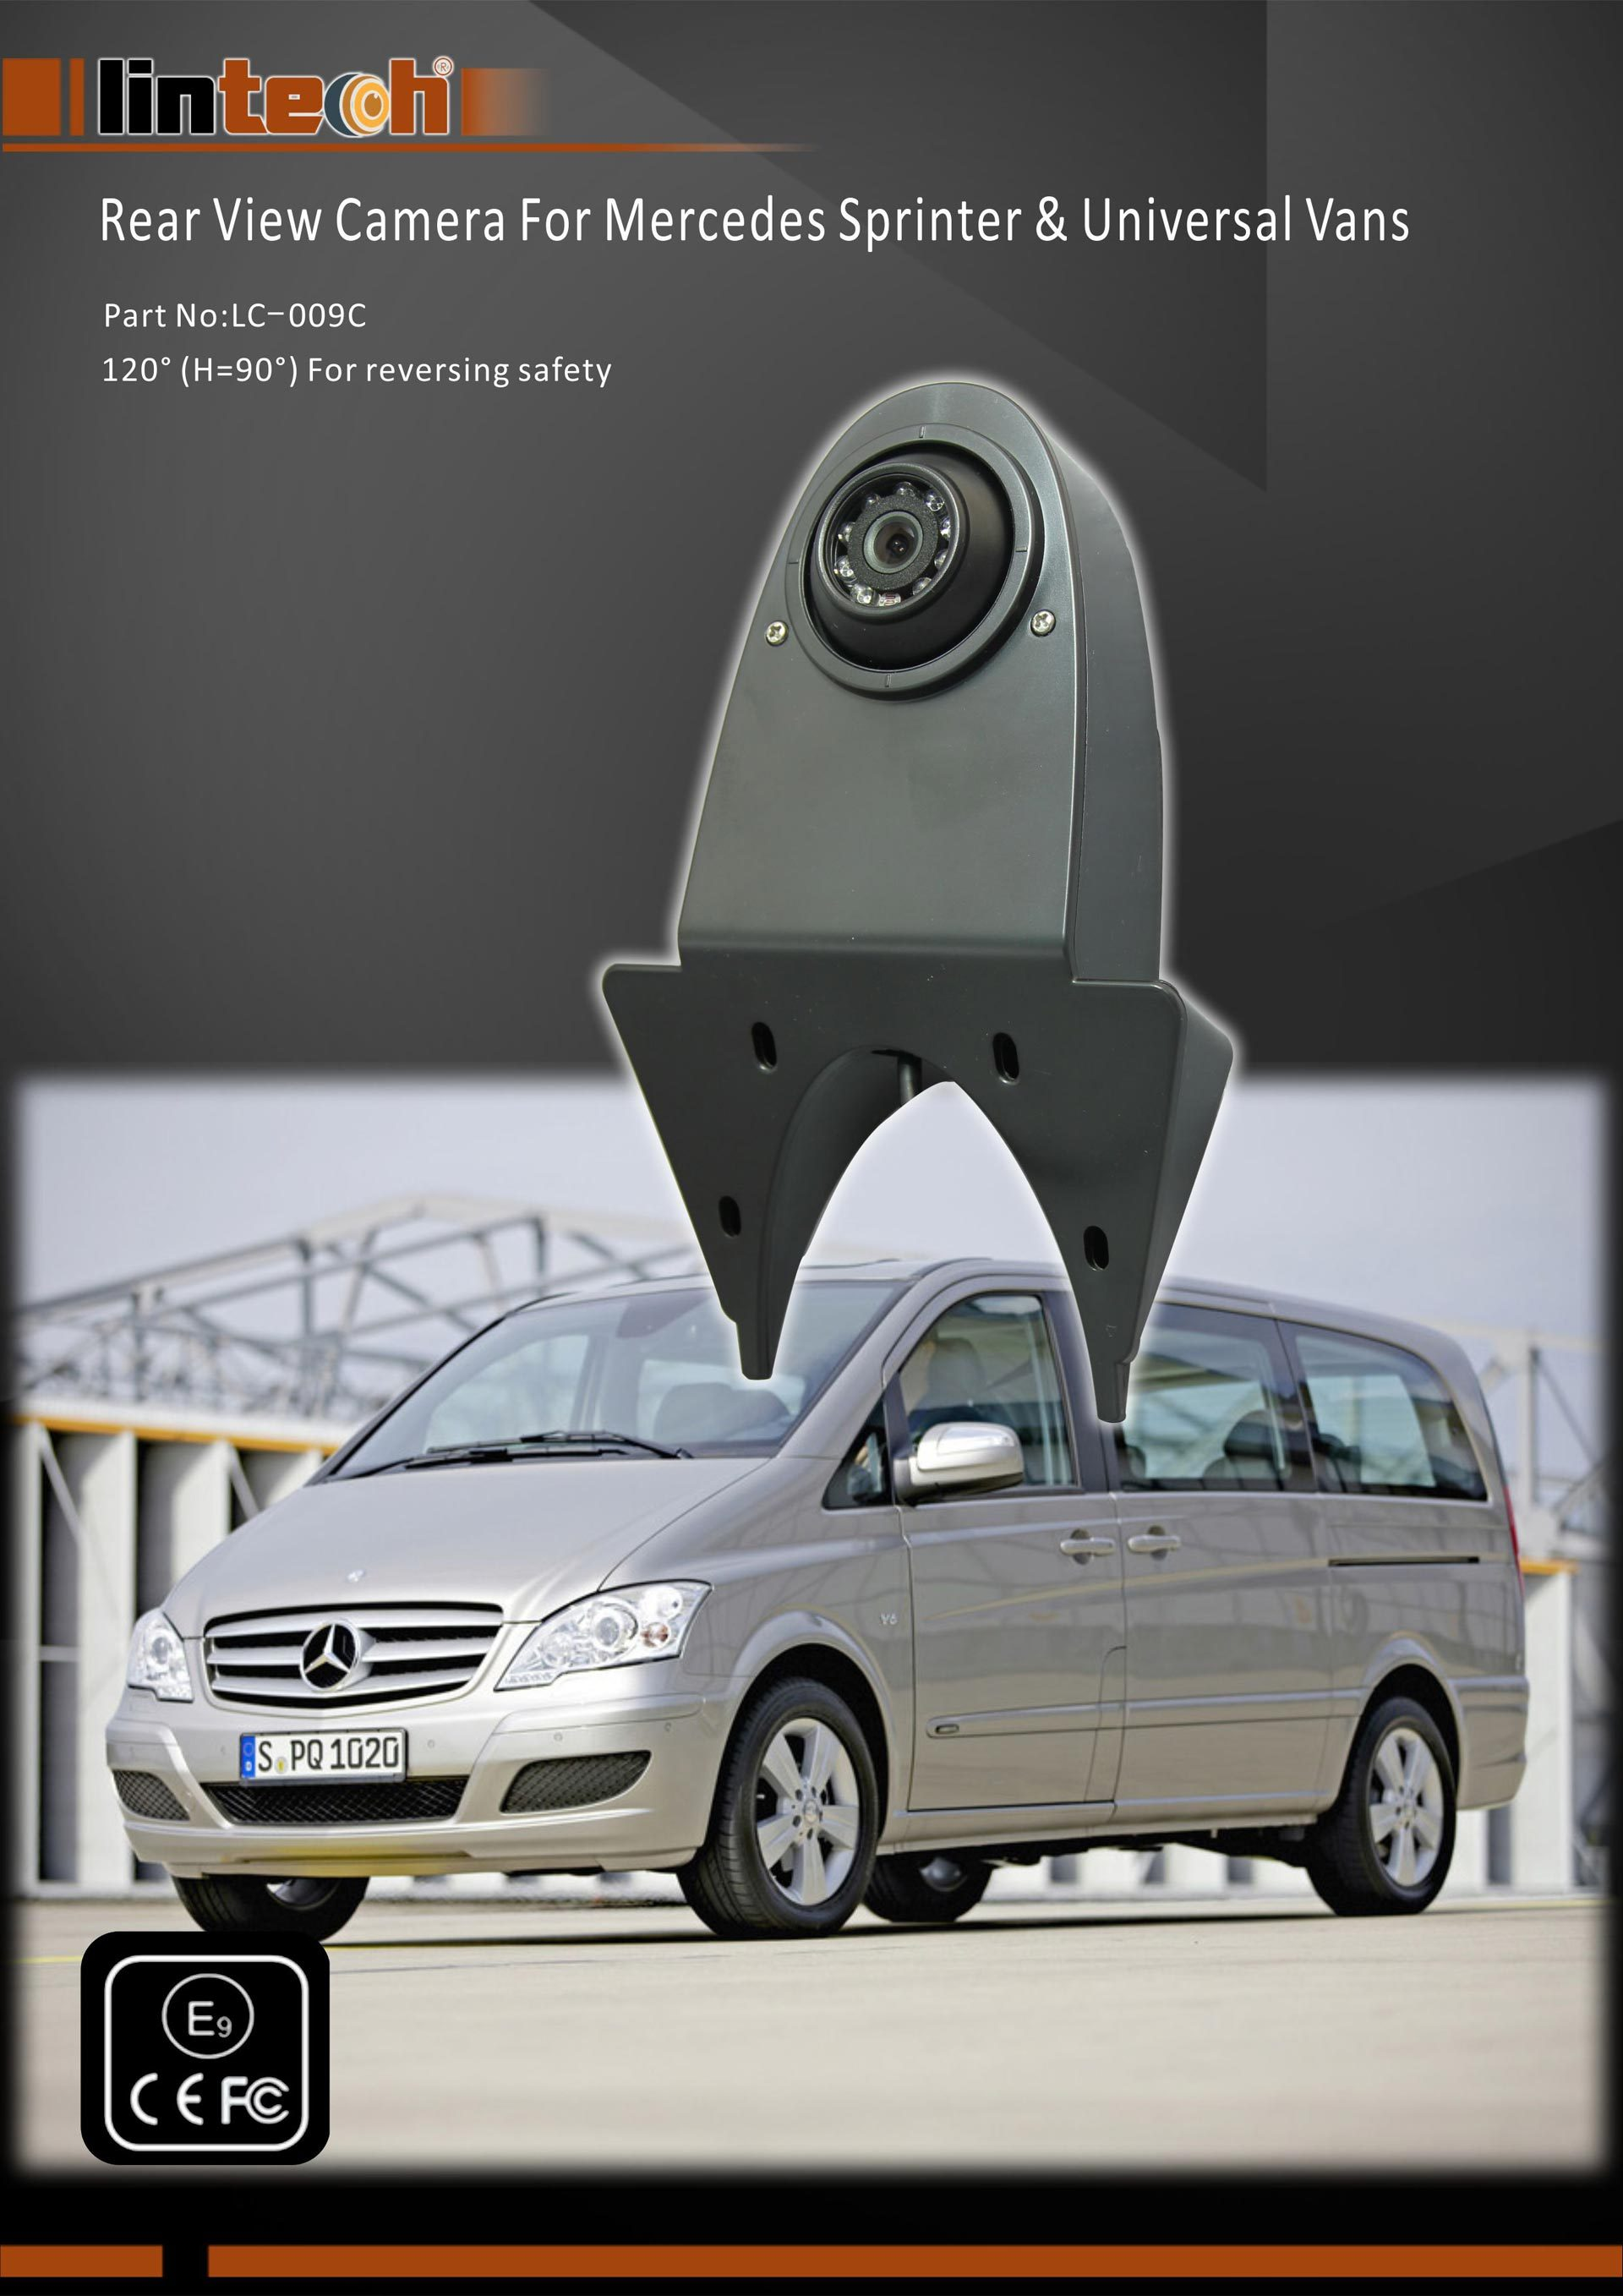 1.Rear View Camera For Mercedes Sprinter & Universal Vans